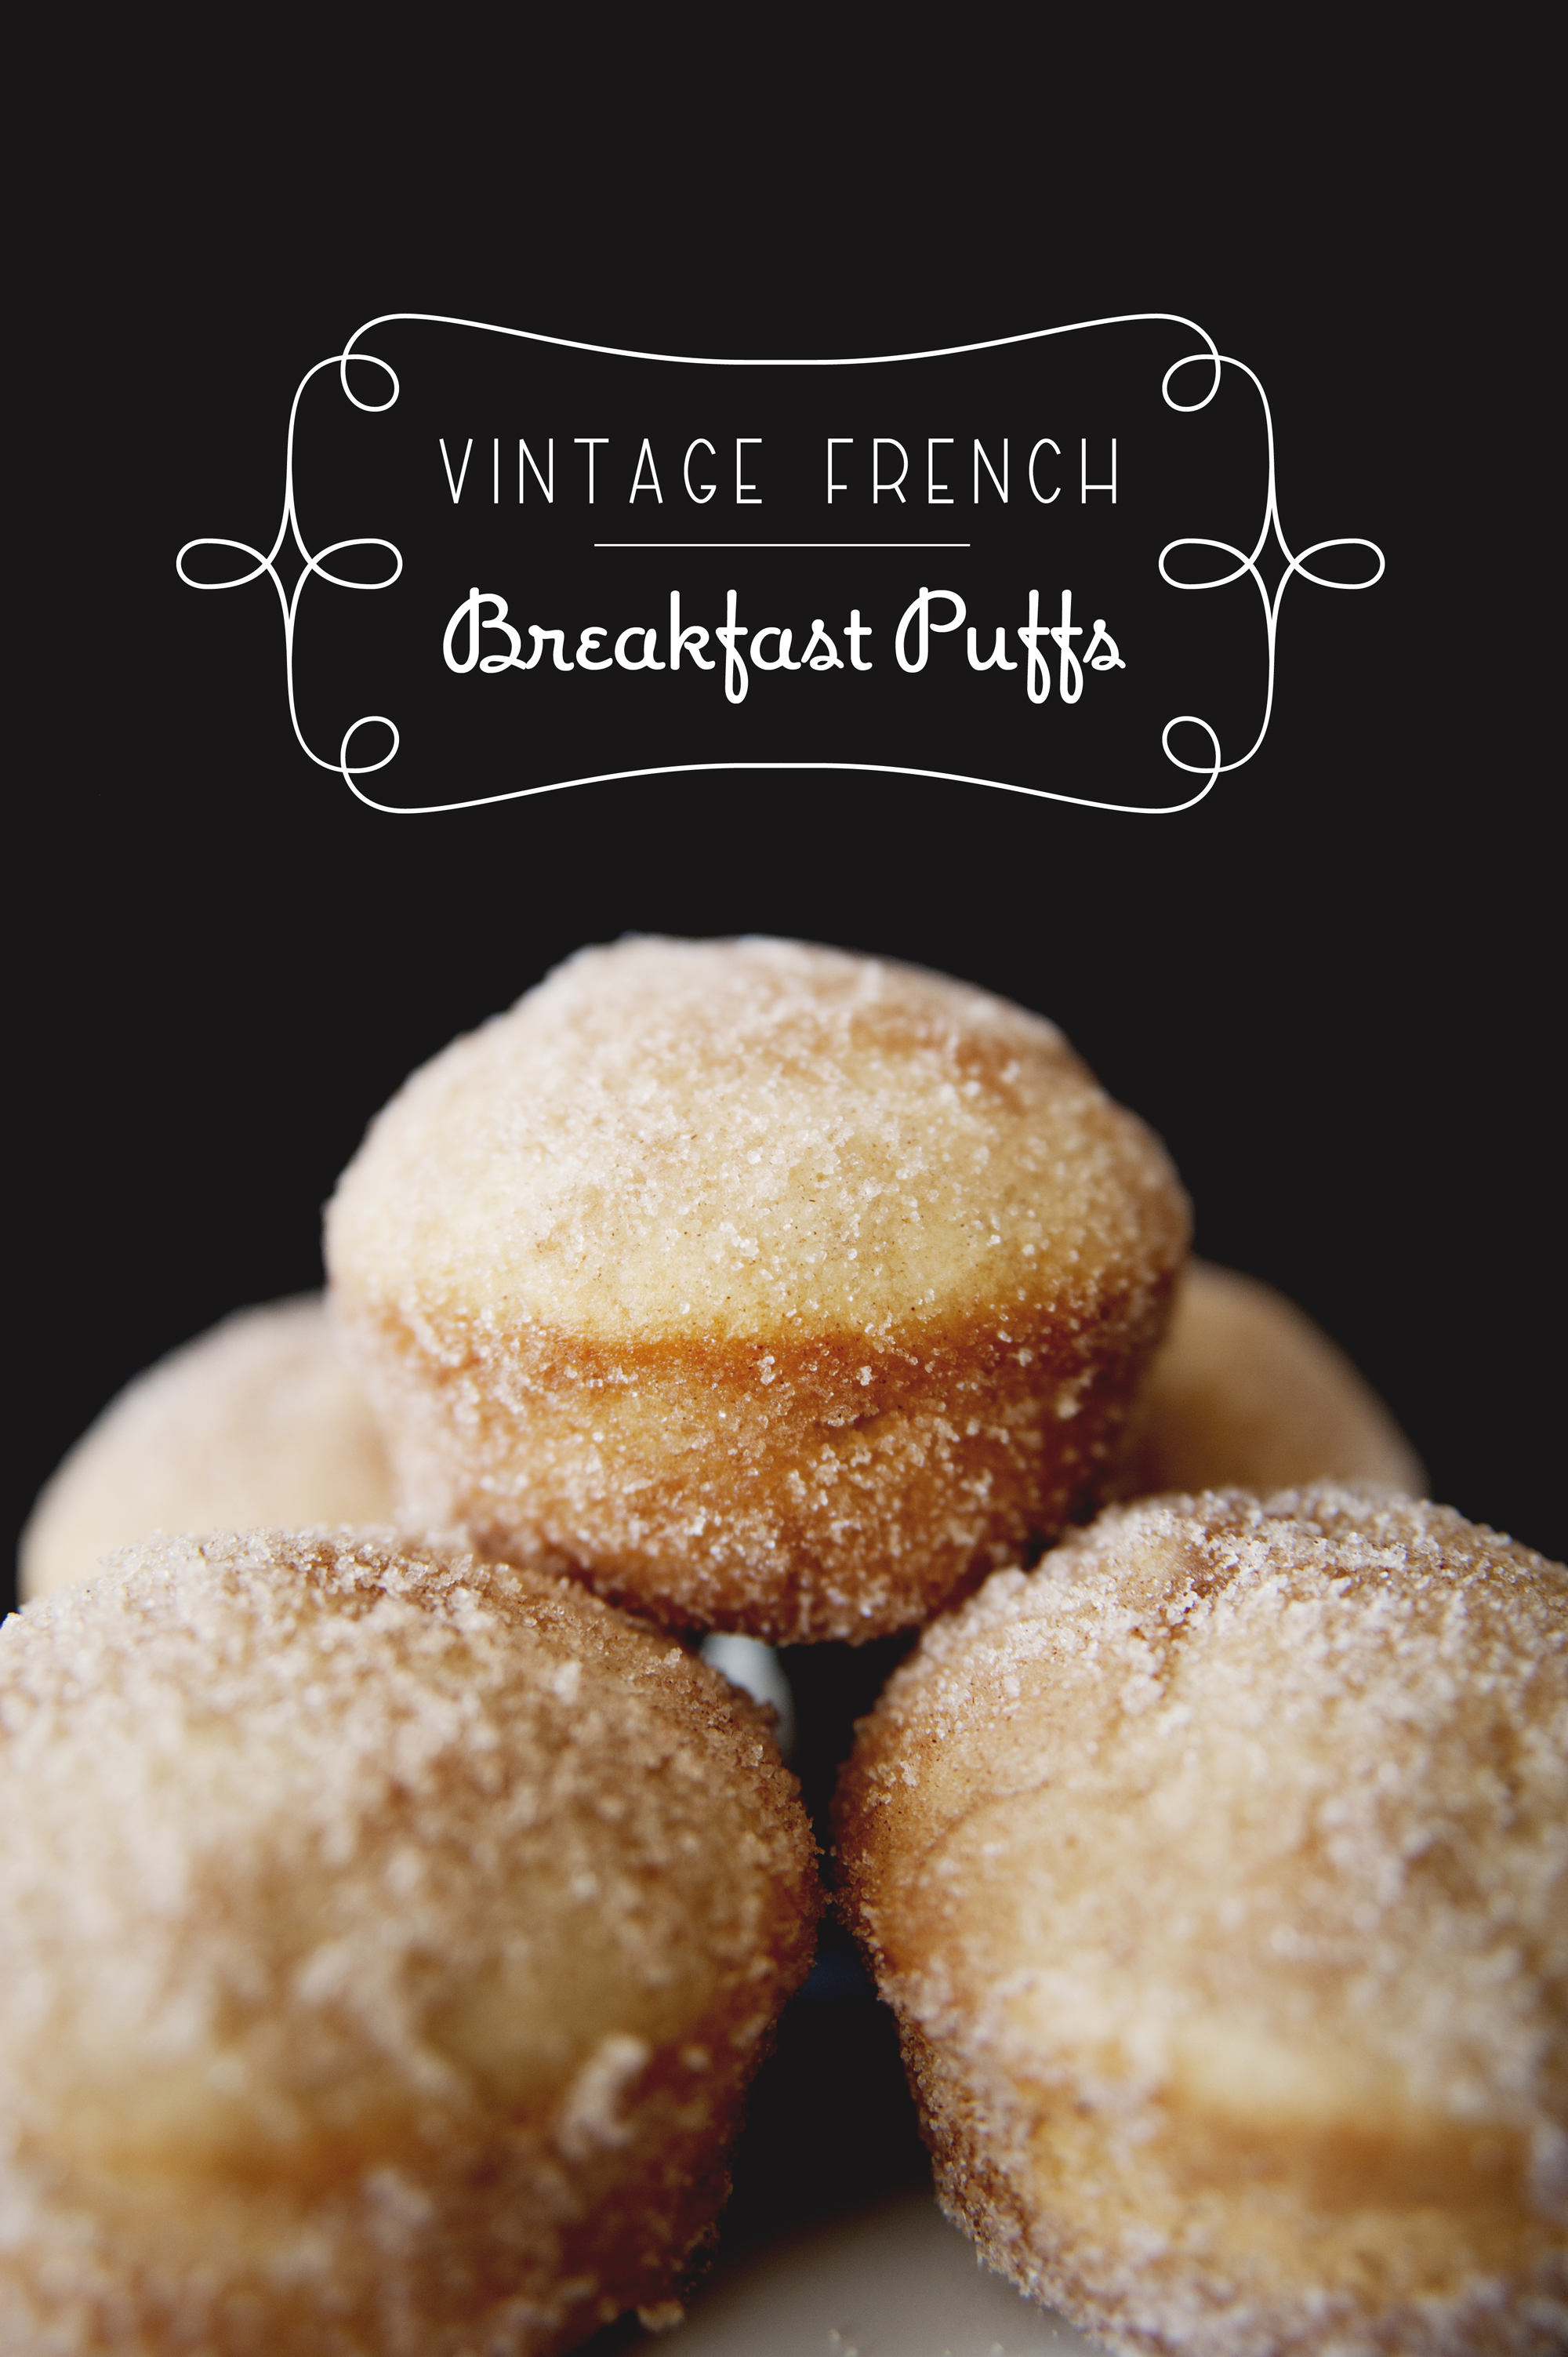 breakfast puffs cinnamon sugar breakfast puffs french breakfast puffs ...